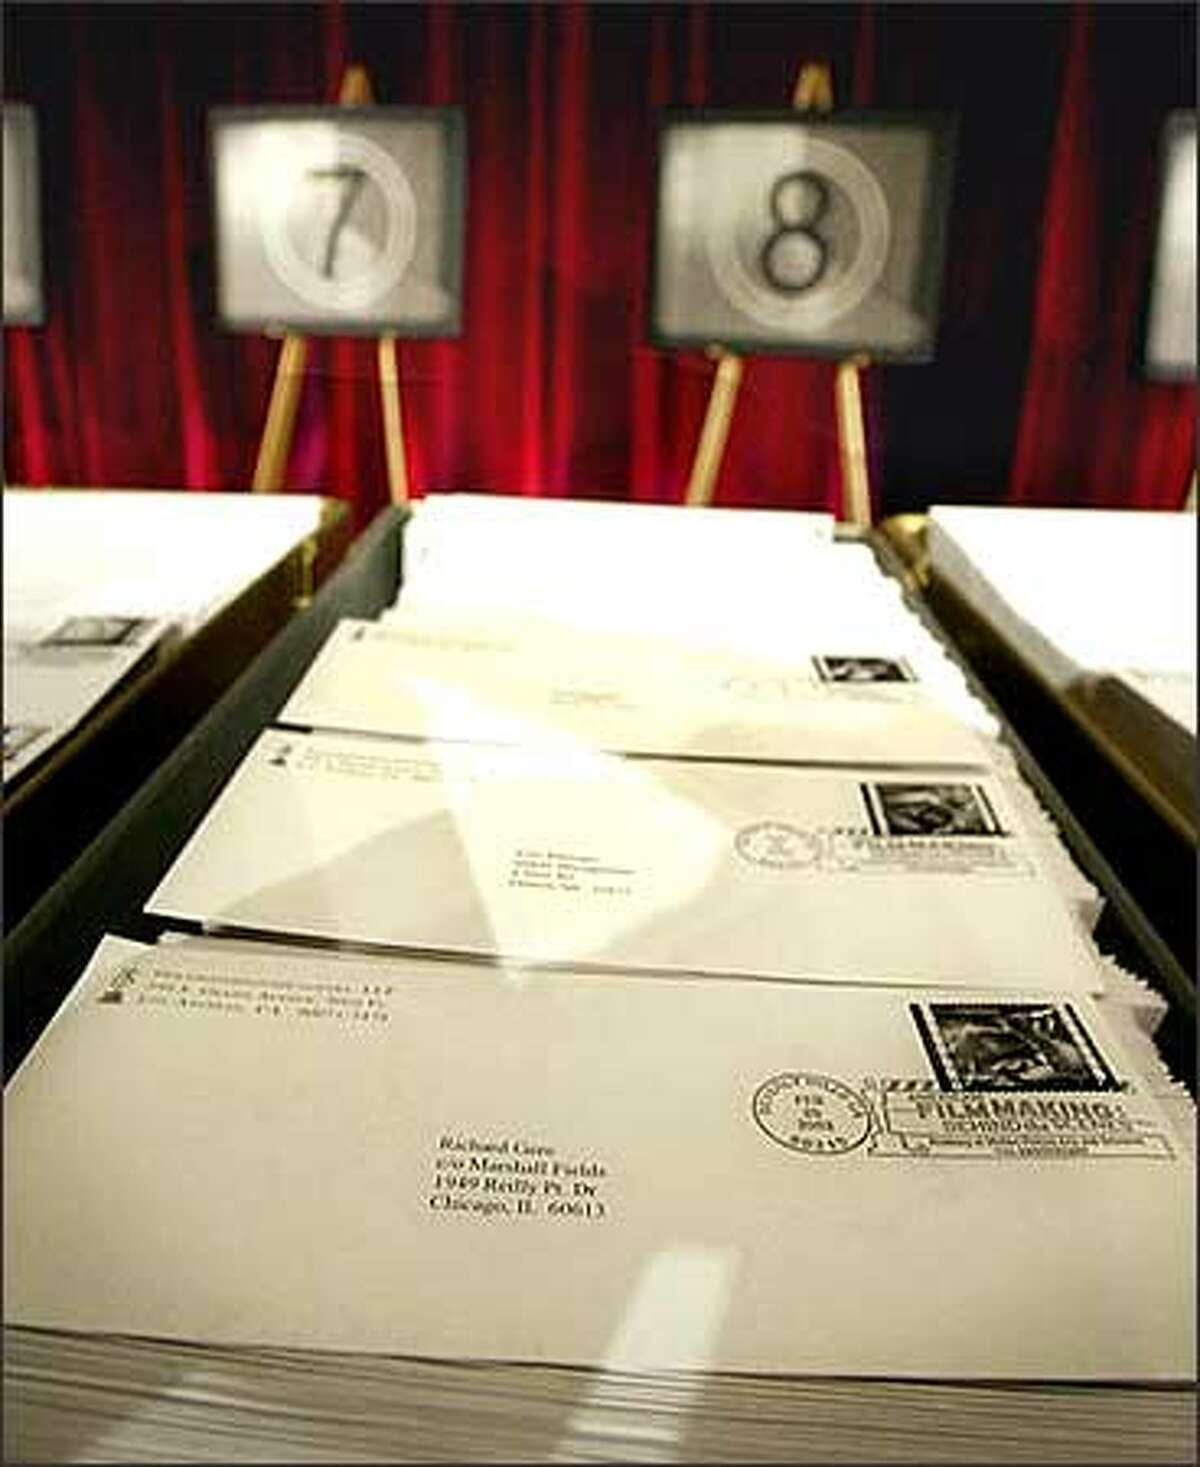 Trays full of final ballots for the 75th Academy Awards, with one addressed to actor Richard Gere strategically placed on top, are displayed on a stage at the Academy of Motion Picture Arts and Sciences in Beverly Hills, Calif., prior to being loaded aboard a mail truck Tuesday, Feb. 25, 2003. The envelopes carry commemorative postage stamps of the U.S. Postal Service's